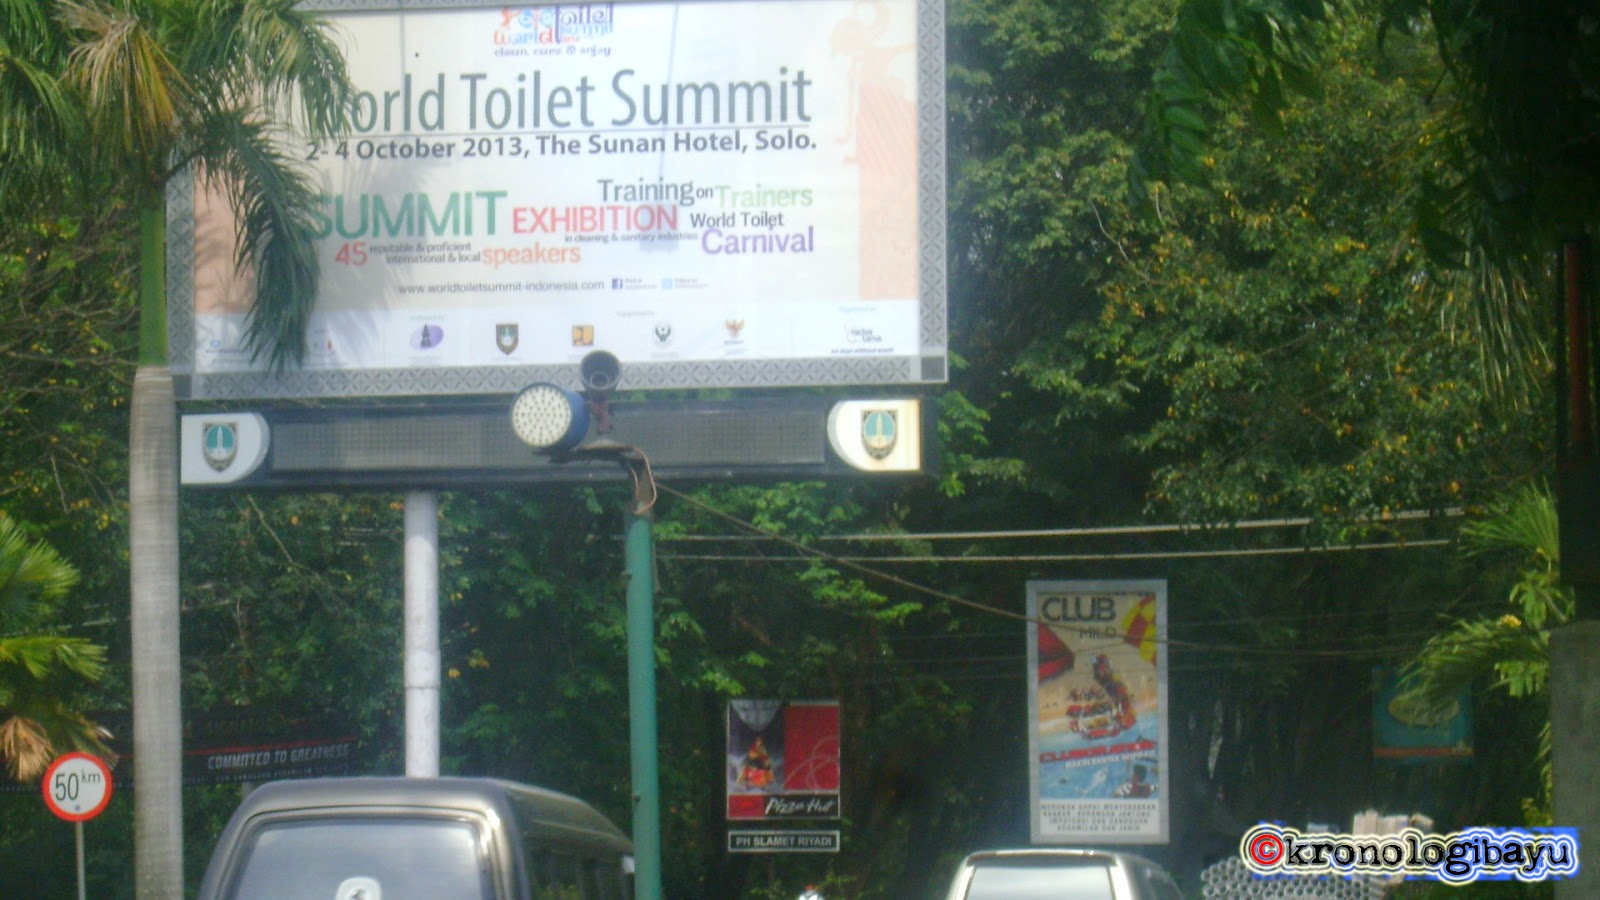 pertemuan toilet tingkat dunia, world toilet summit